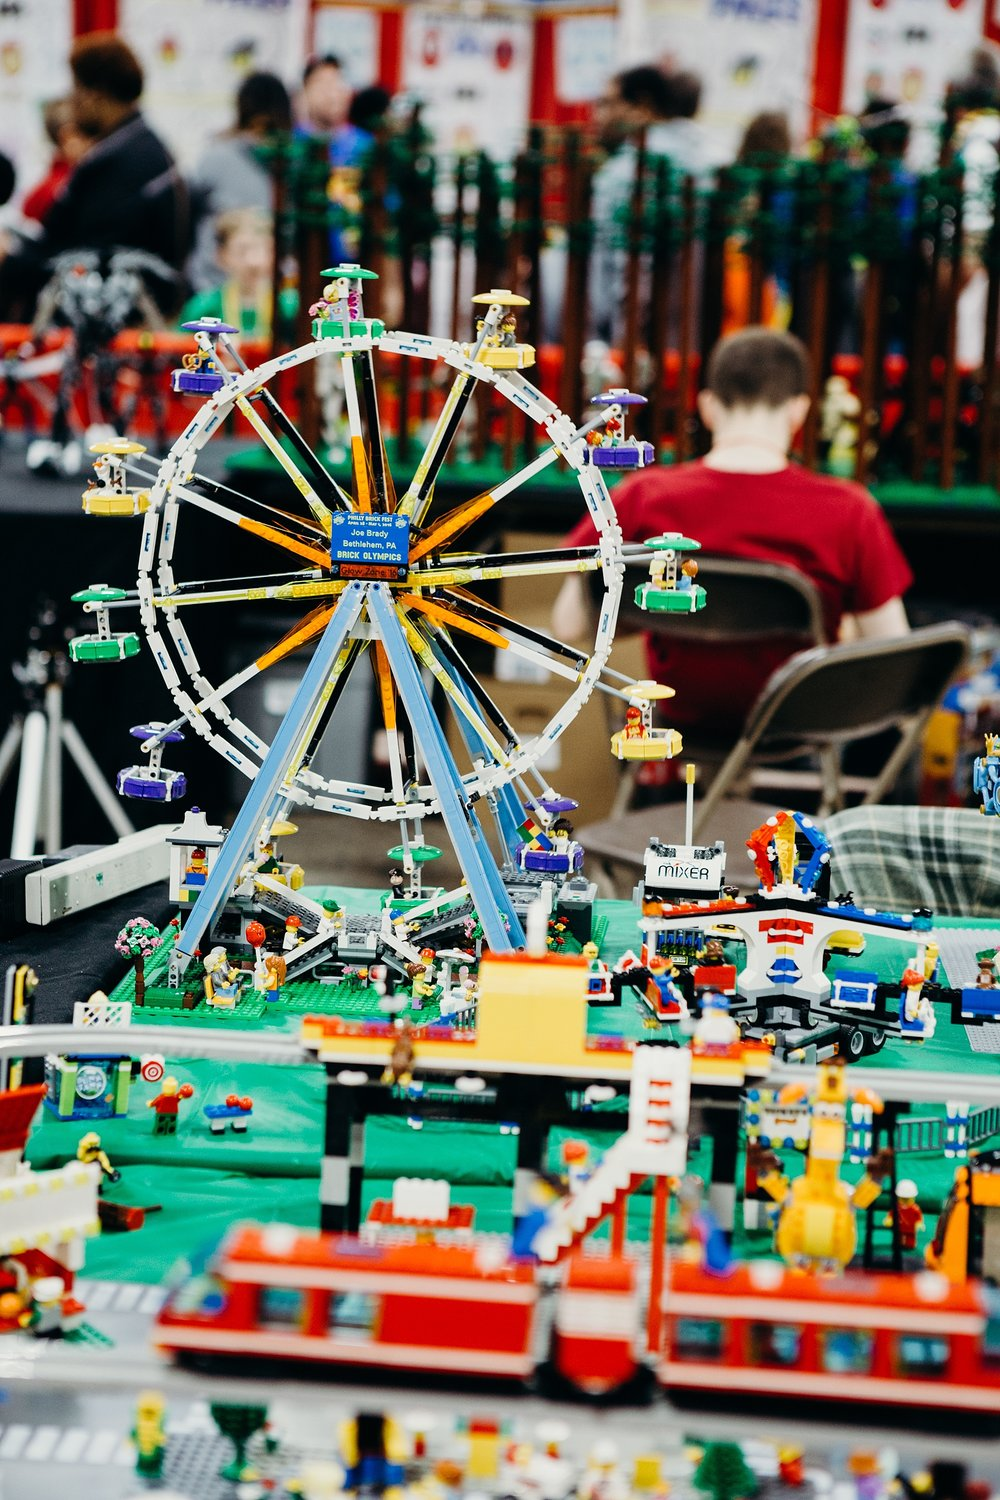 Joe_mac_Creative_Photography_Lego_Convention_Expo_Philadelphia__0014.jpg